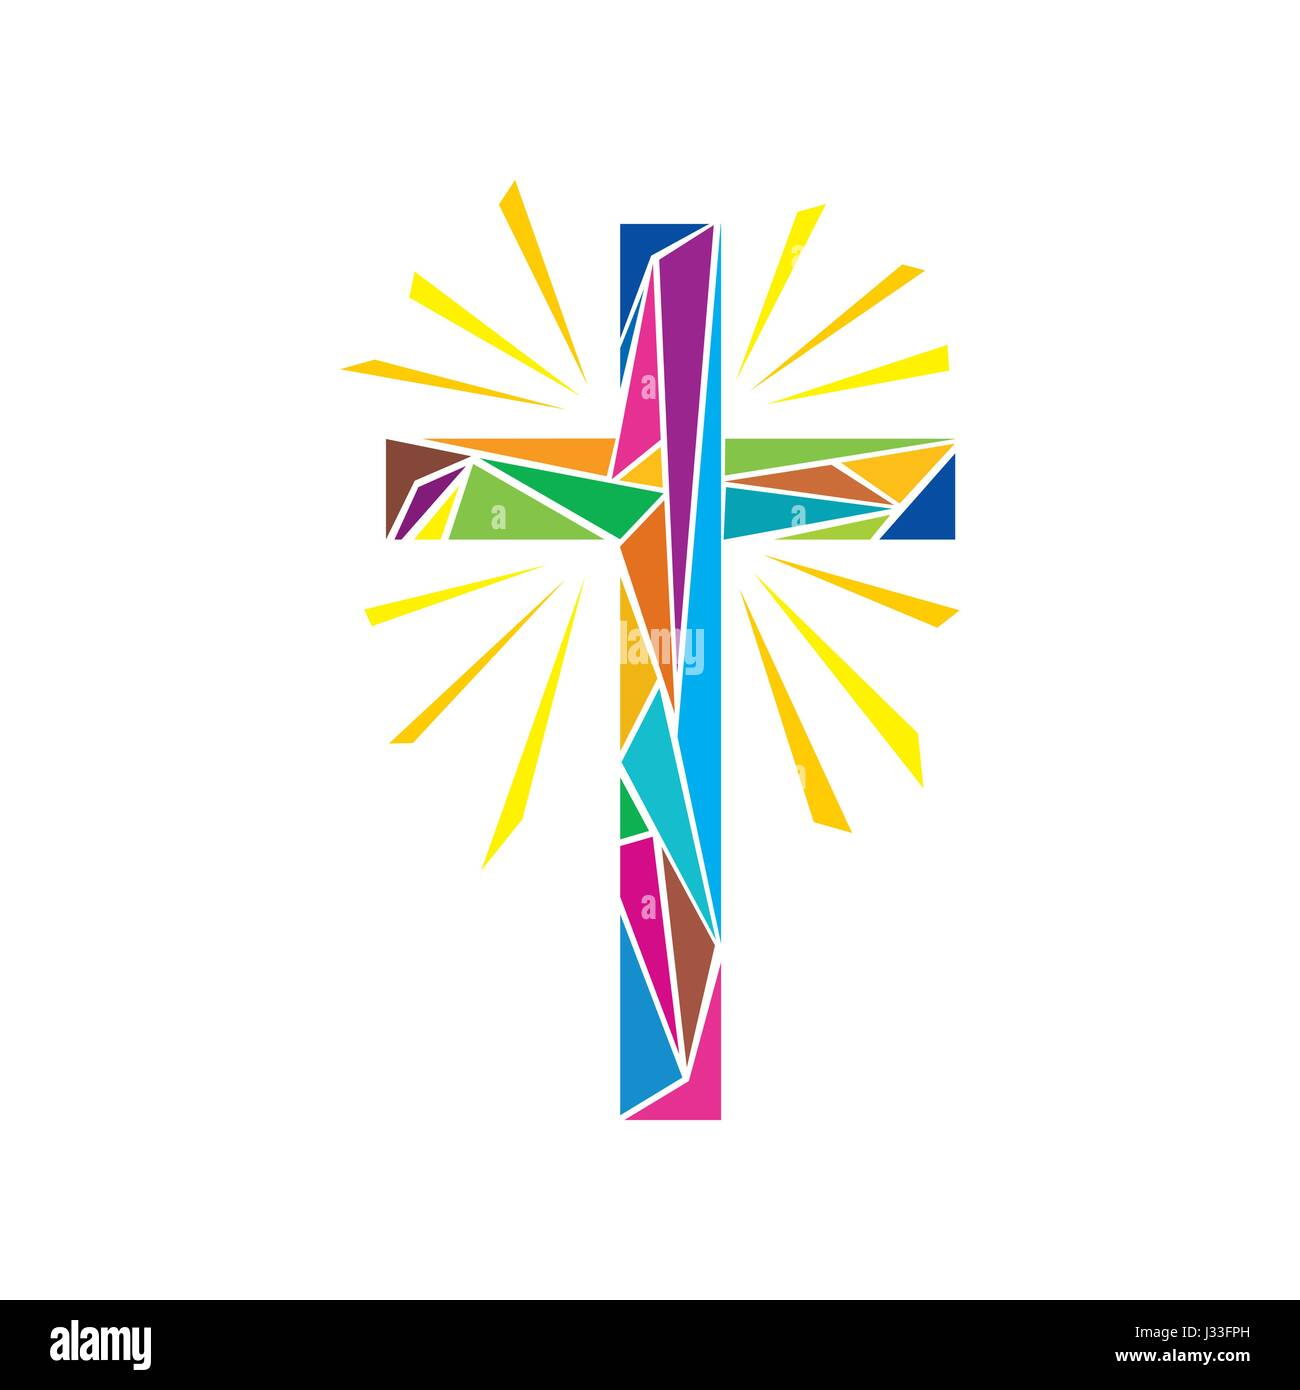 Church logo christian symbols the cross of jesus christ made up of church logo christian symbols the cross of jesus christ made up of multi colored elements shine rays buycottarizona Image collections